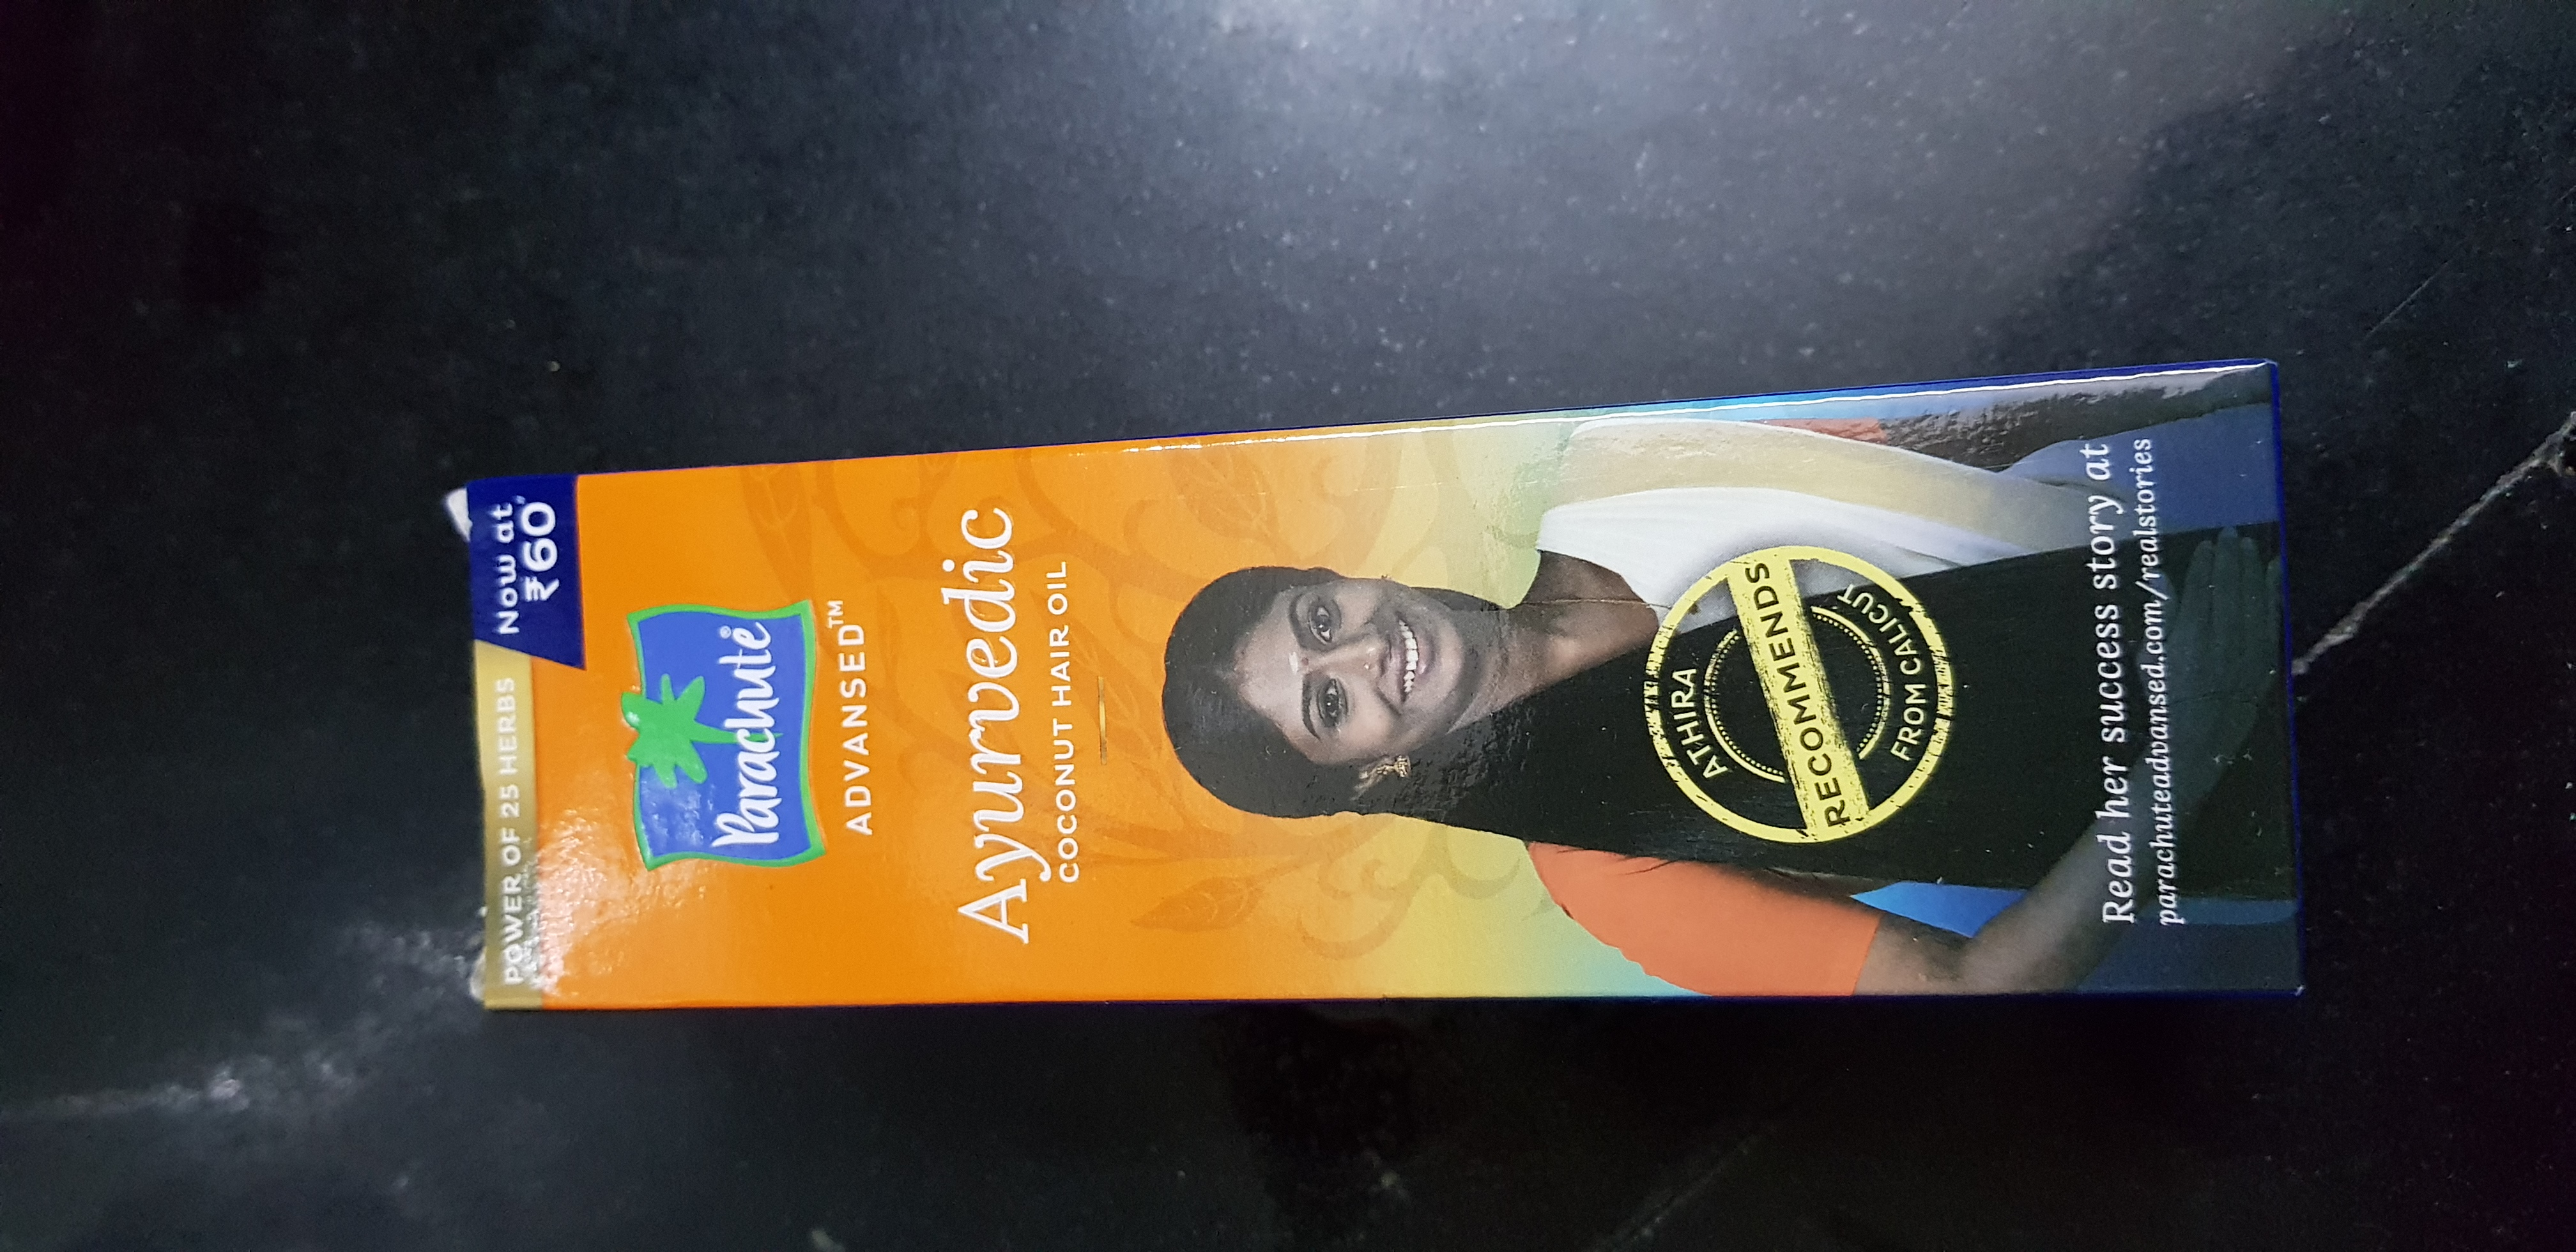 Parachute Advansed Ayurvedic Coconut Hair Oil pic 2-Recommended-By anitapratapsing